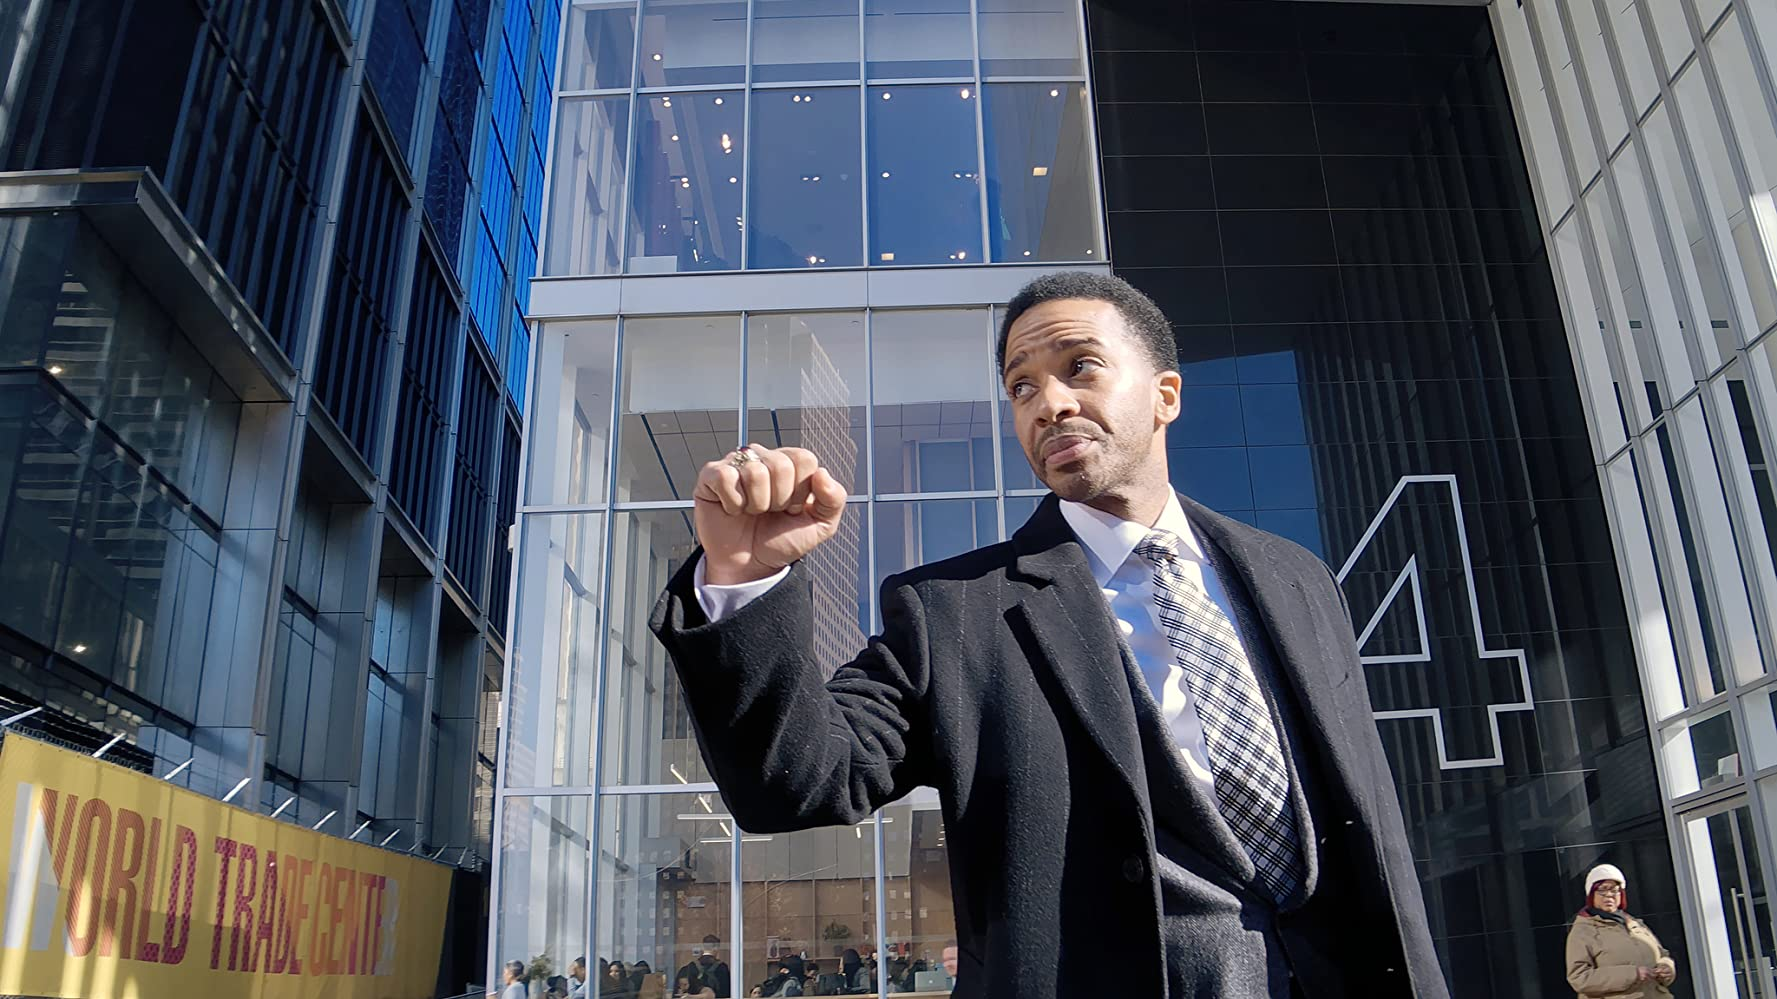 André Holland in High Flying Bird (2019)